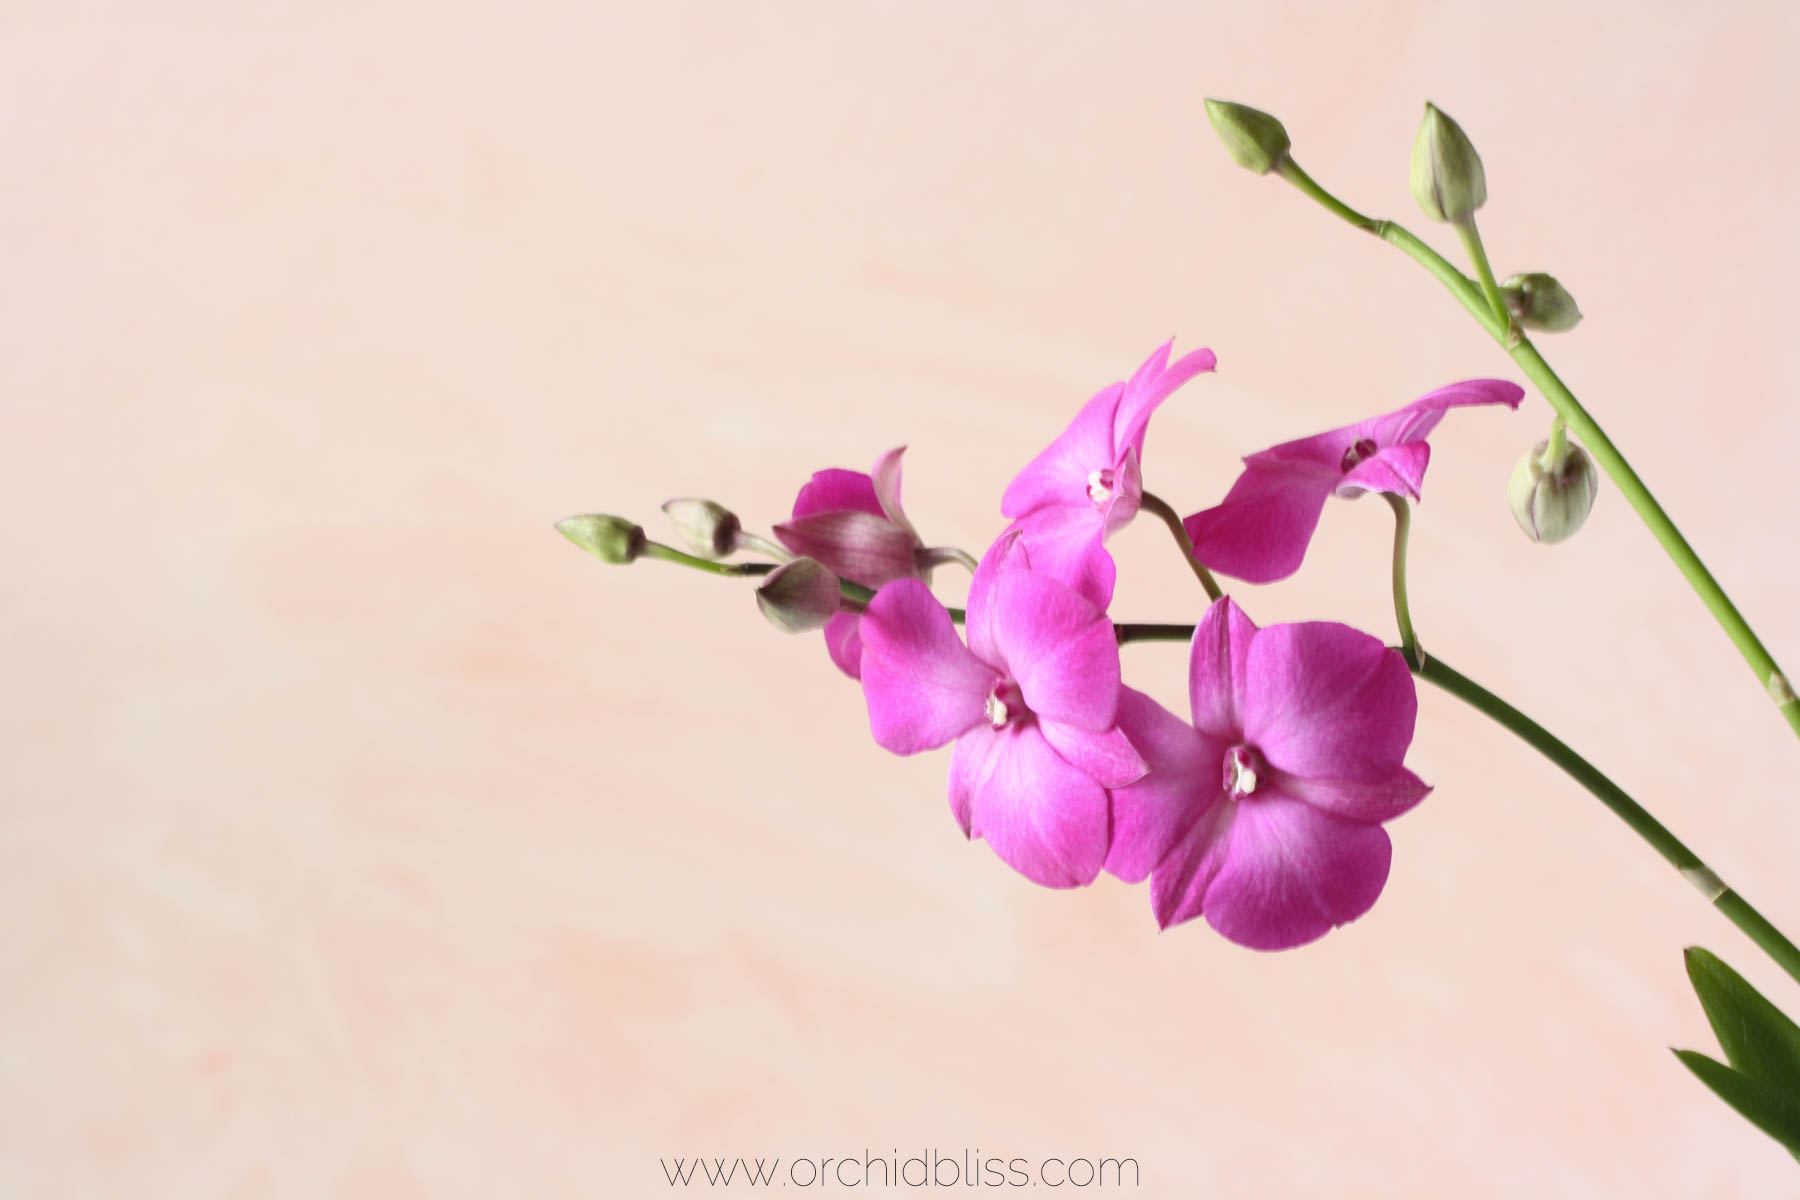 dendrobium phalaenopsis - spring blooming orchid